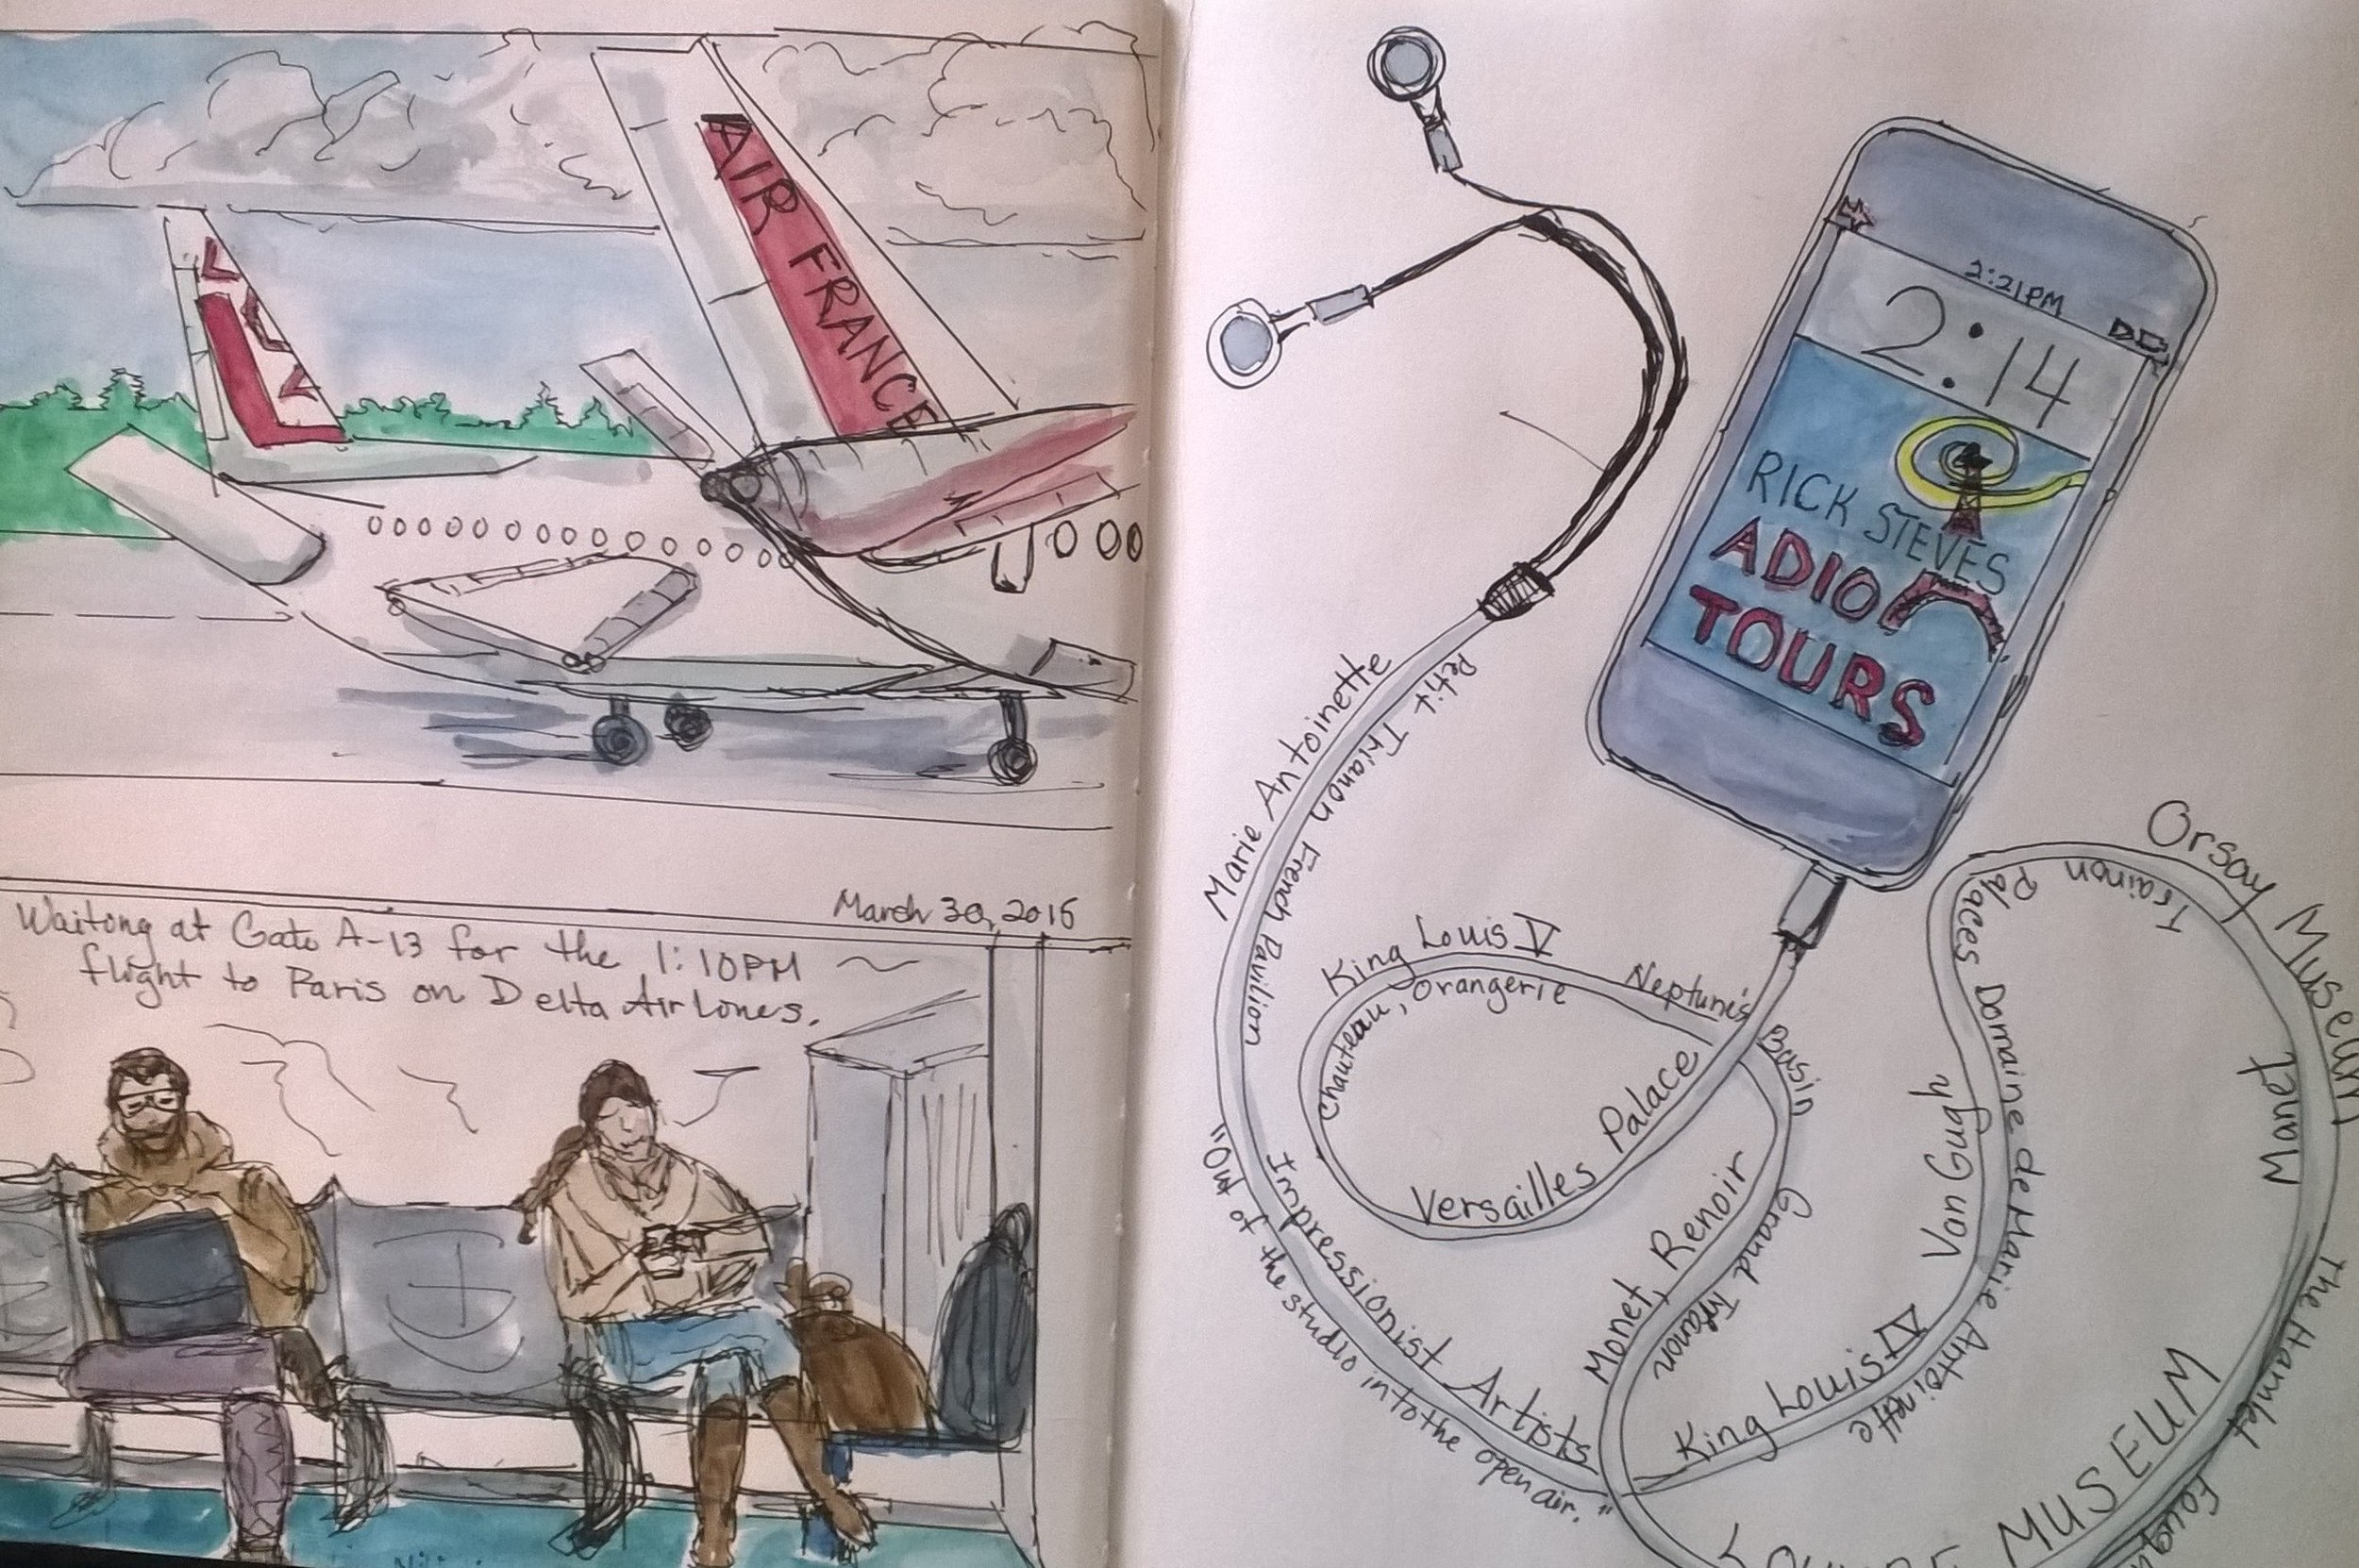 Seattle to Pairs  So excited to get on the plane to fly to Paris and create my first travel sketchbook!The sketch on the left I did while waiting to board after getting to SeaTac airport very early! On board the flight, I practiced French and listedned to podcasts from Rick Steves Travel website on the history of Paris, and guided tours through the Louvre and Versailles, and did this sketch.  Most of the sketches I will be sharing with you I did after I got home from photos, because of the pace of our touring didn't allow for sitting and sketching very often. Here and there, I found time to do sketching while traveling, and I'll make note of those. I hope you enjoy traveling with me as I revisit Paris in my blog posts!